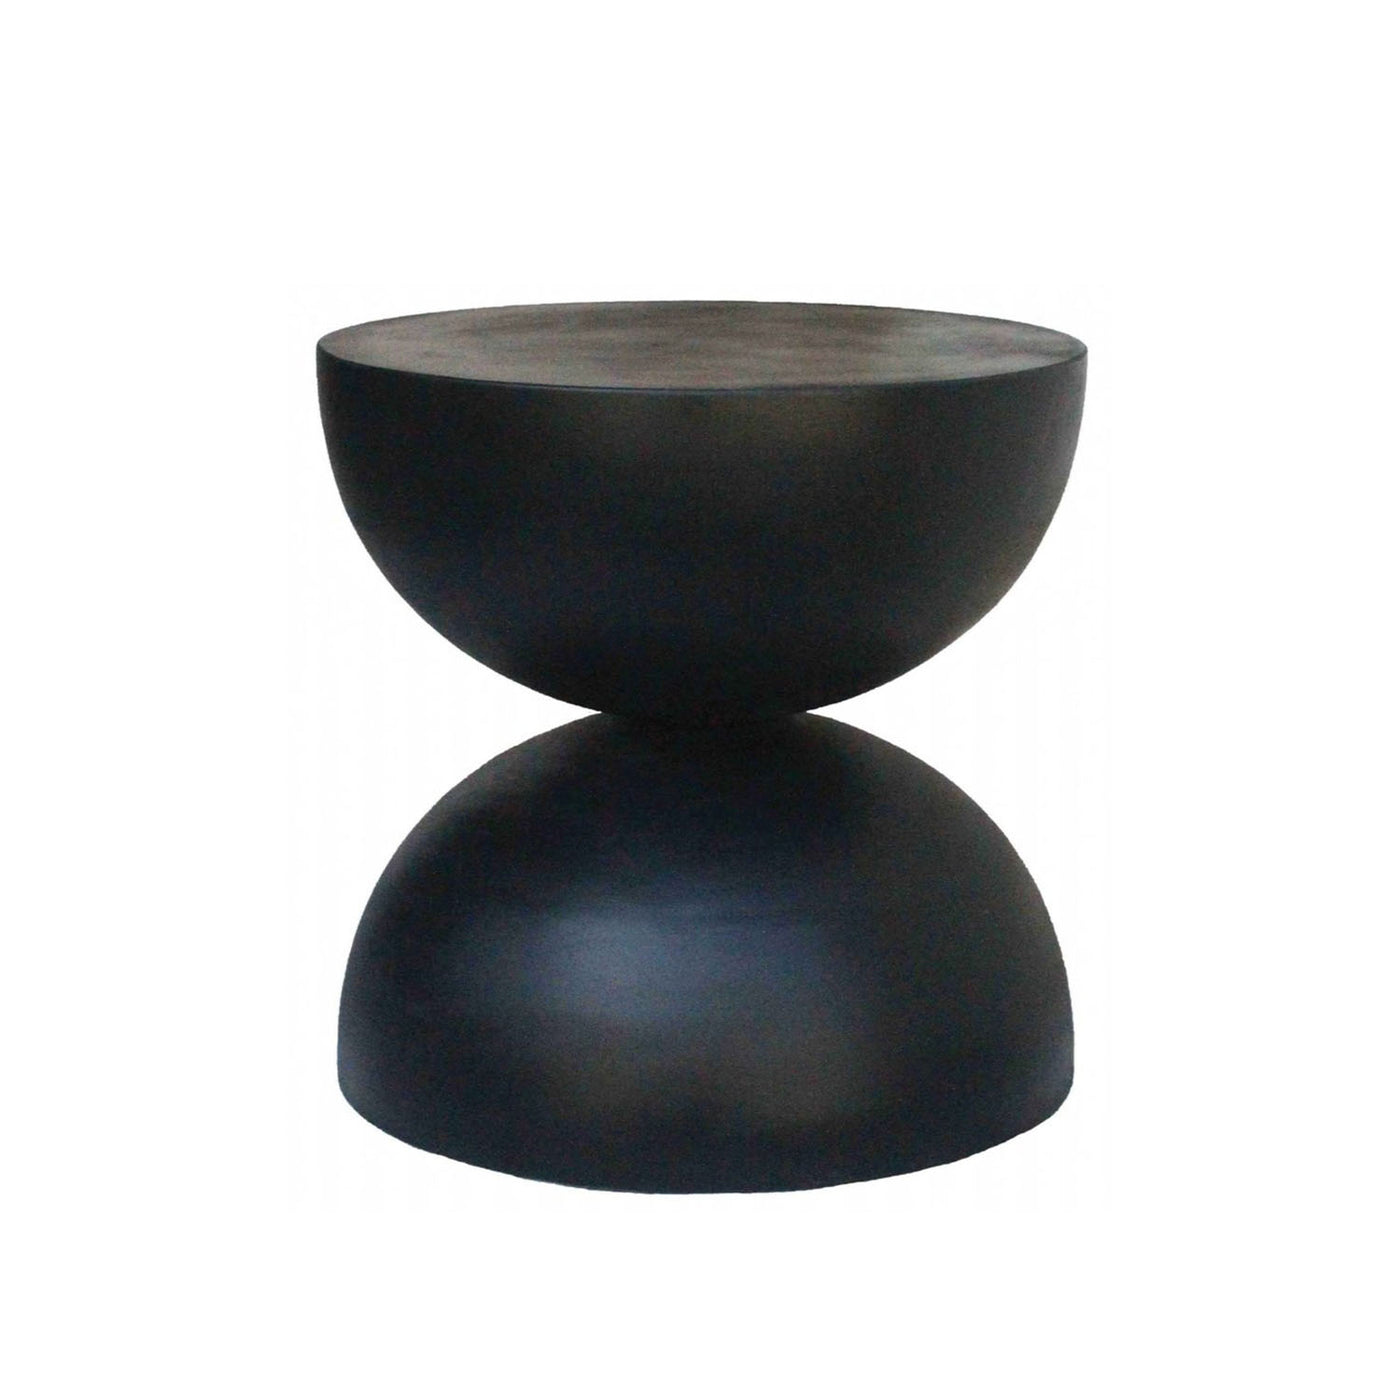 Uniqwa Furniture Mele Stool - Black Wood